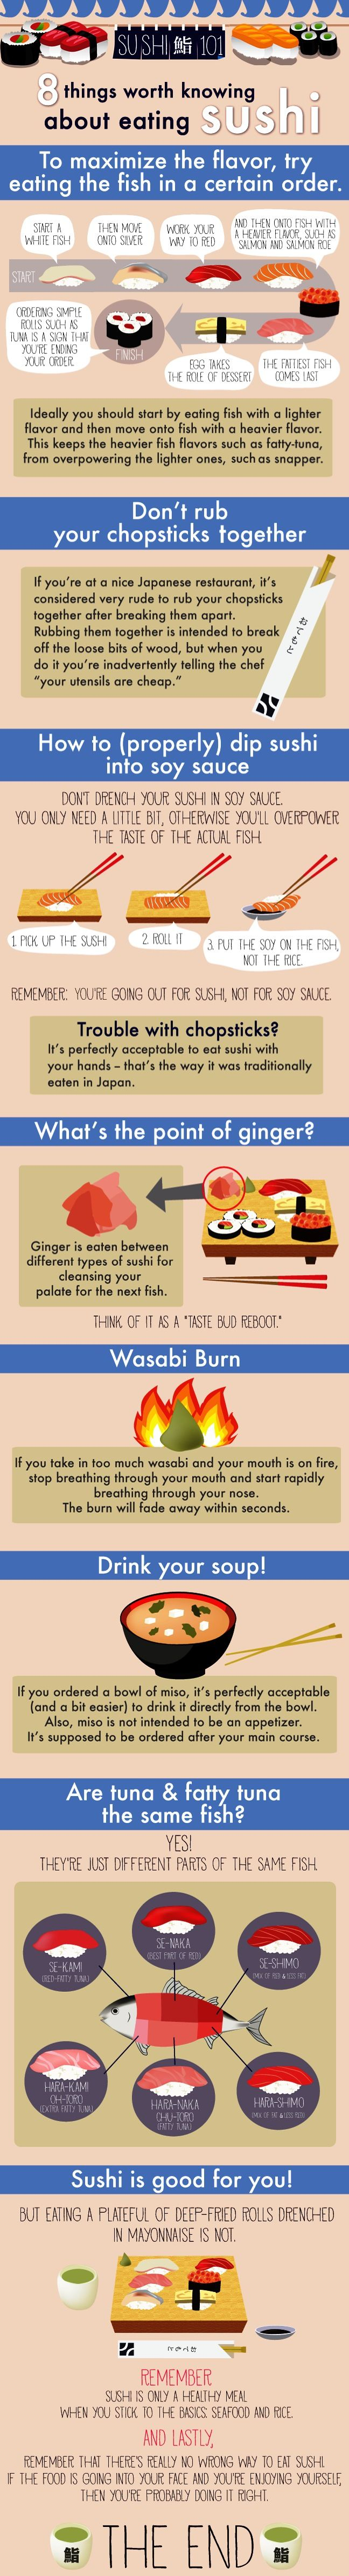 good stuff to know, even if I use ginger on my sushi... helps balance the taste of wasabi